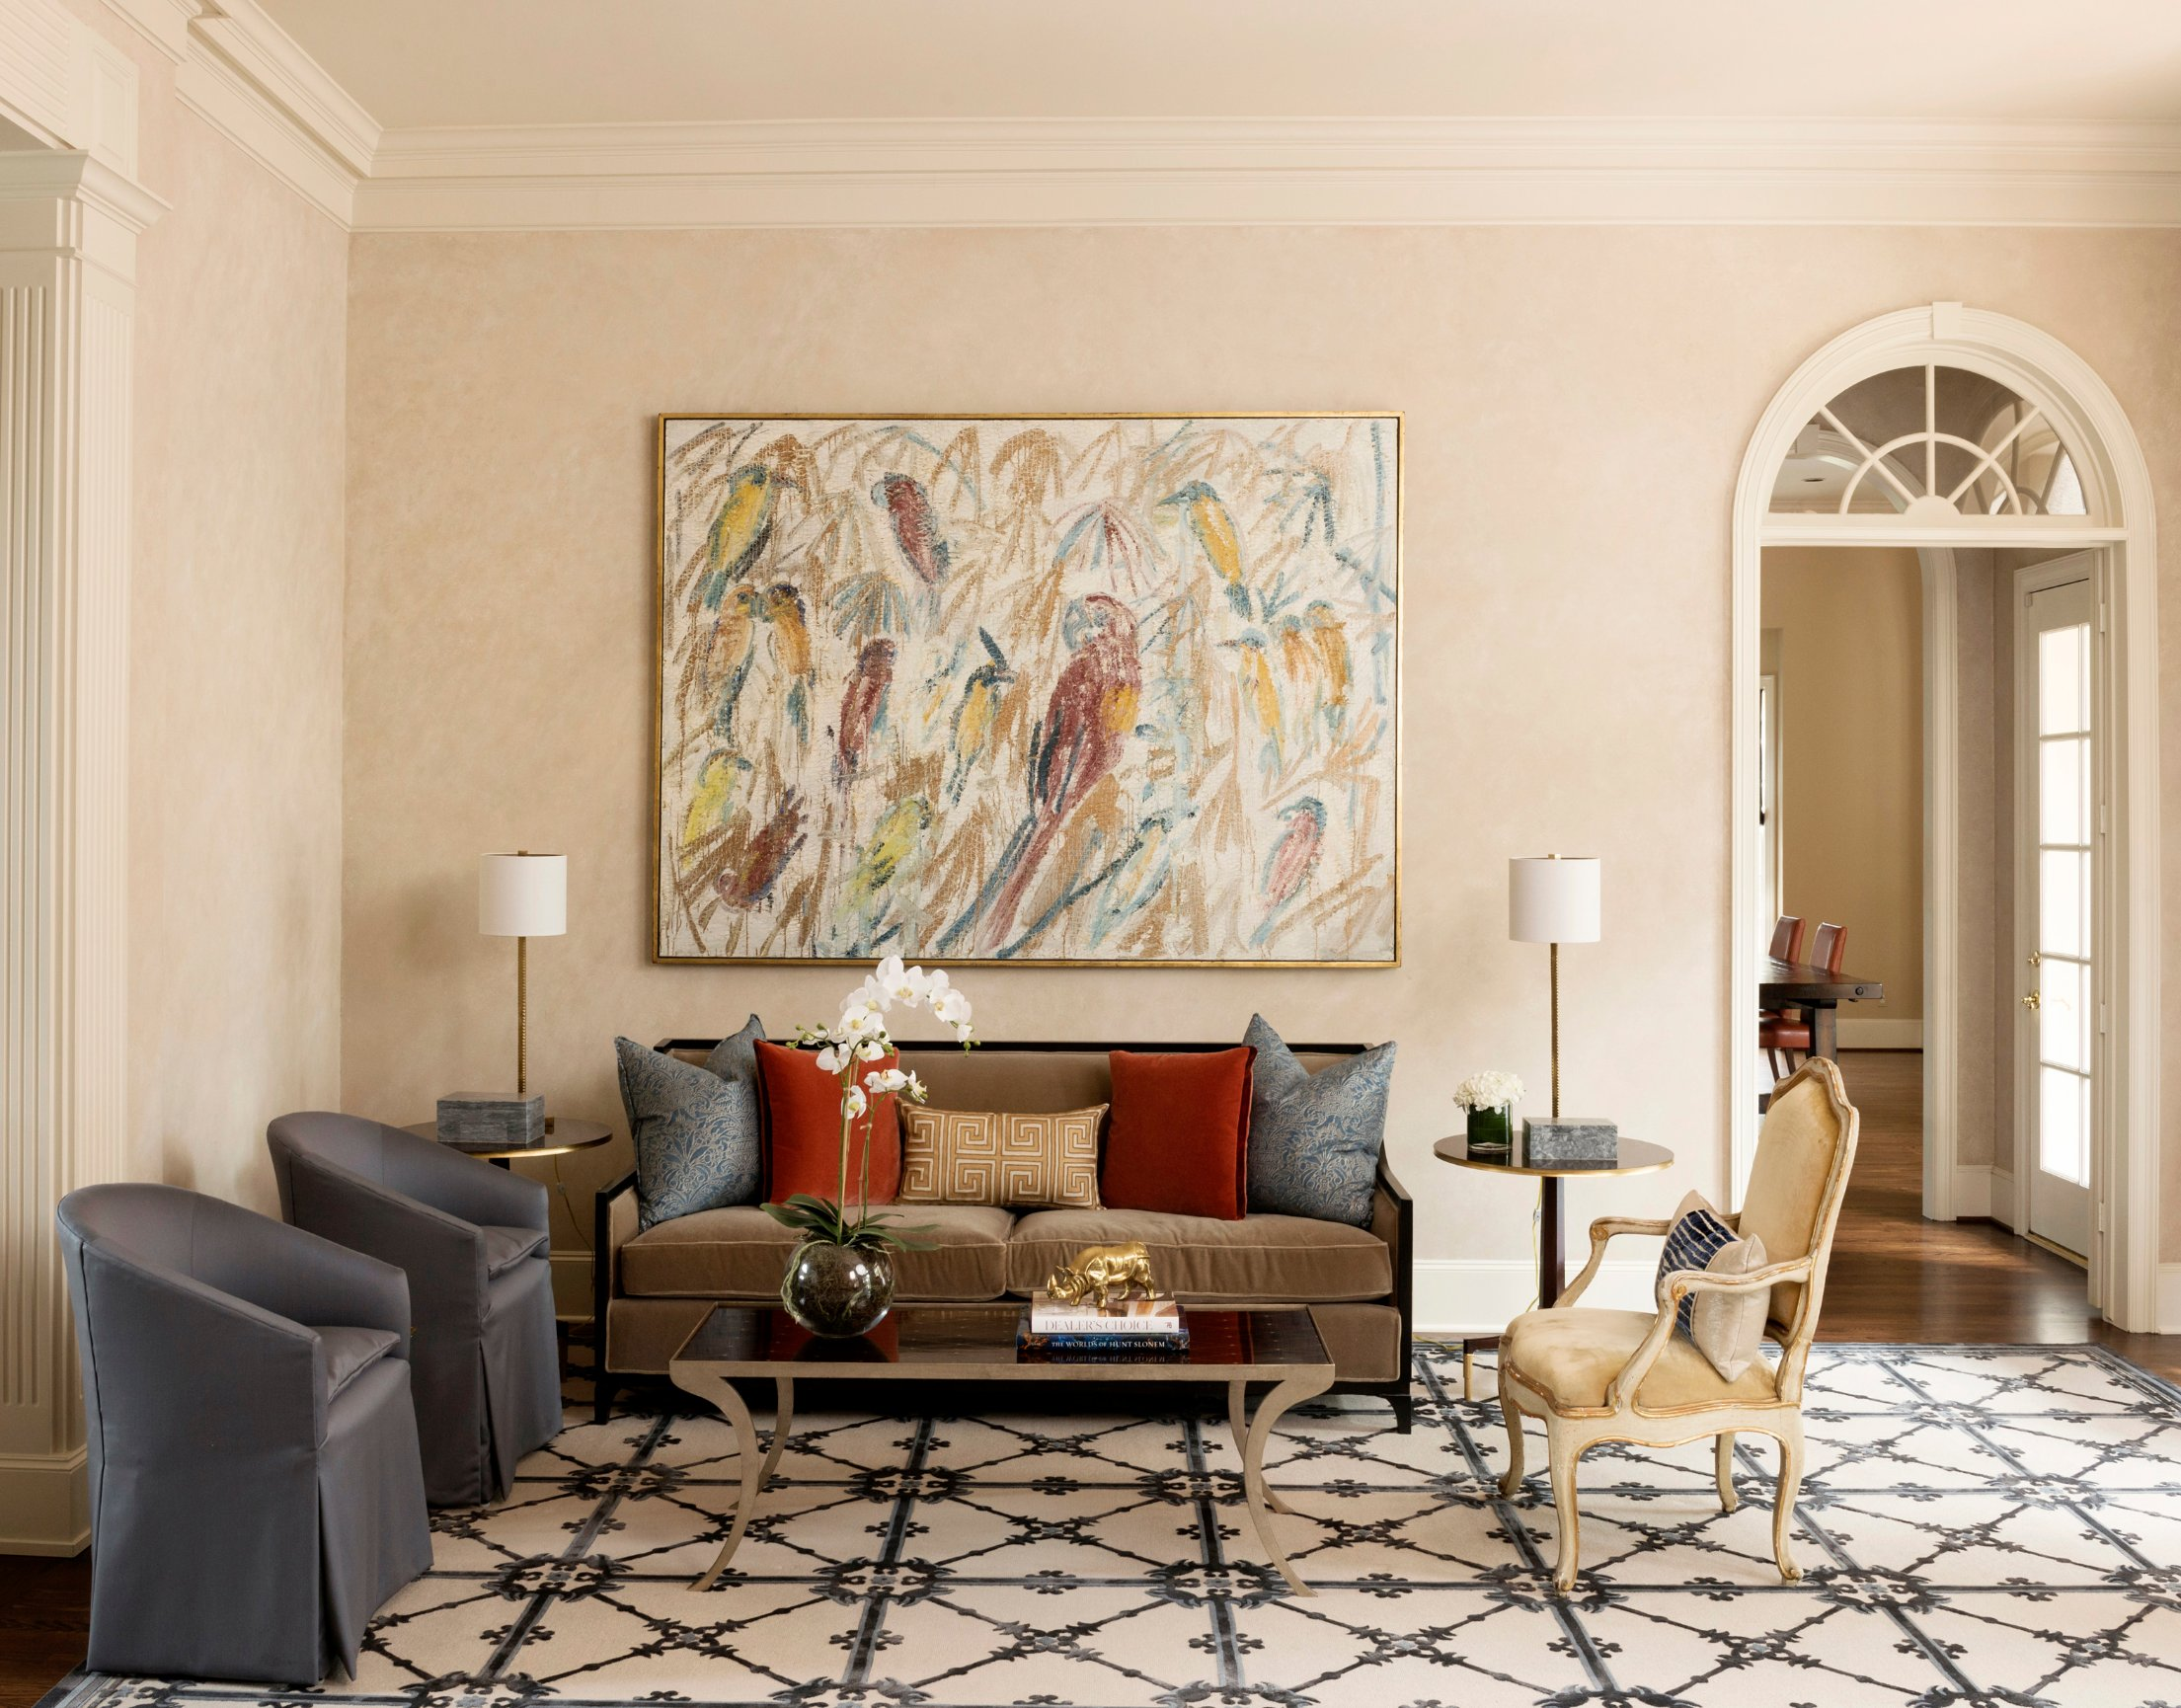 shadder way interior design dodson interiors houston tx